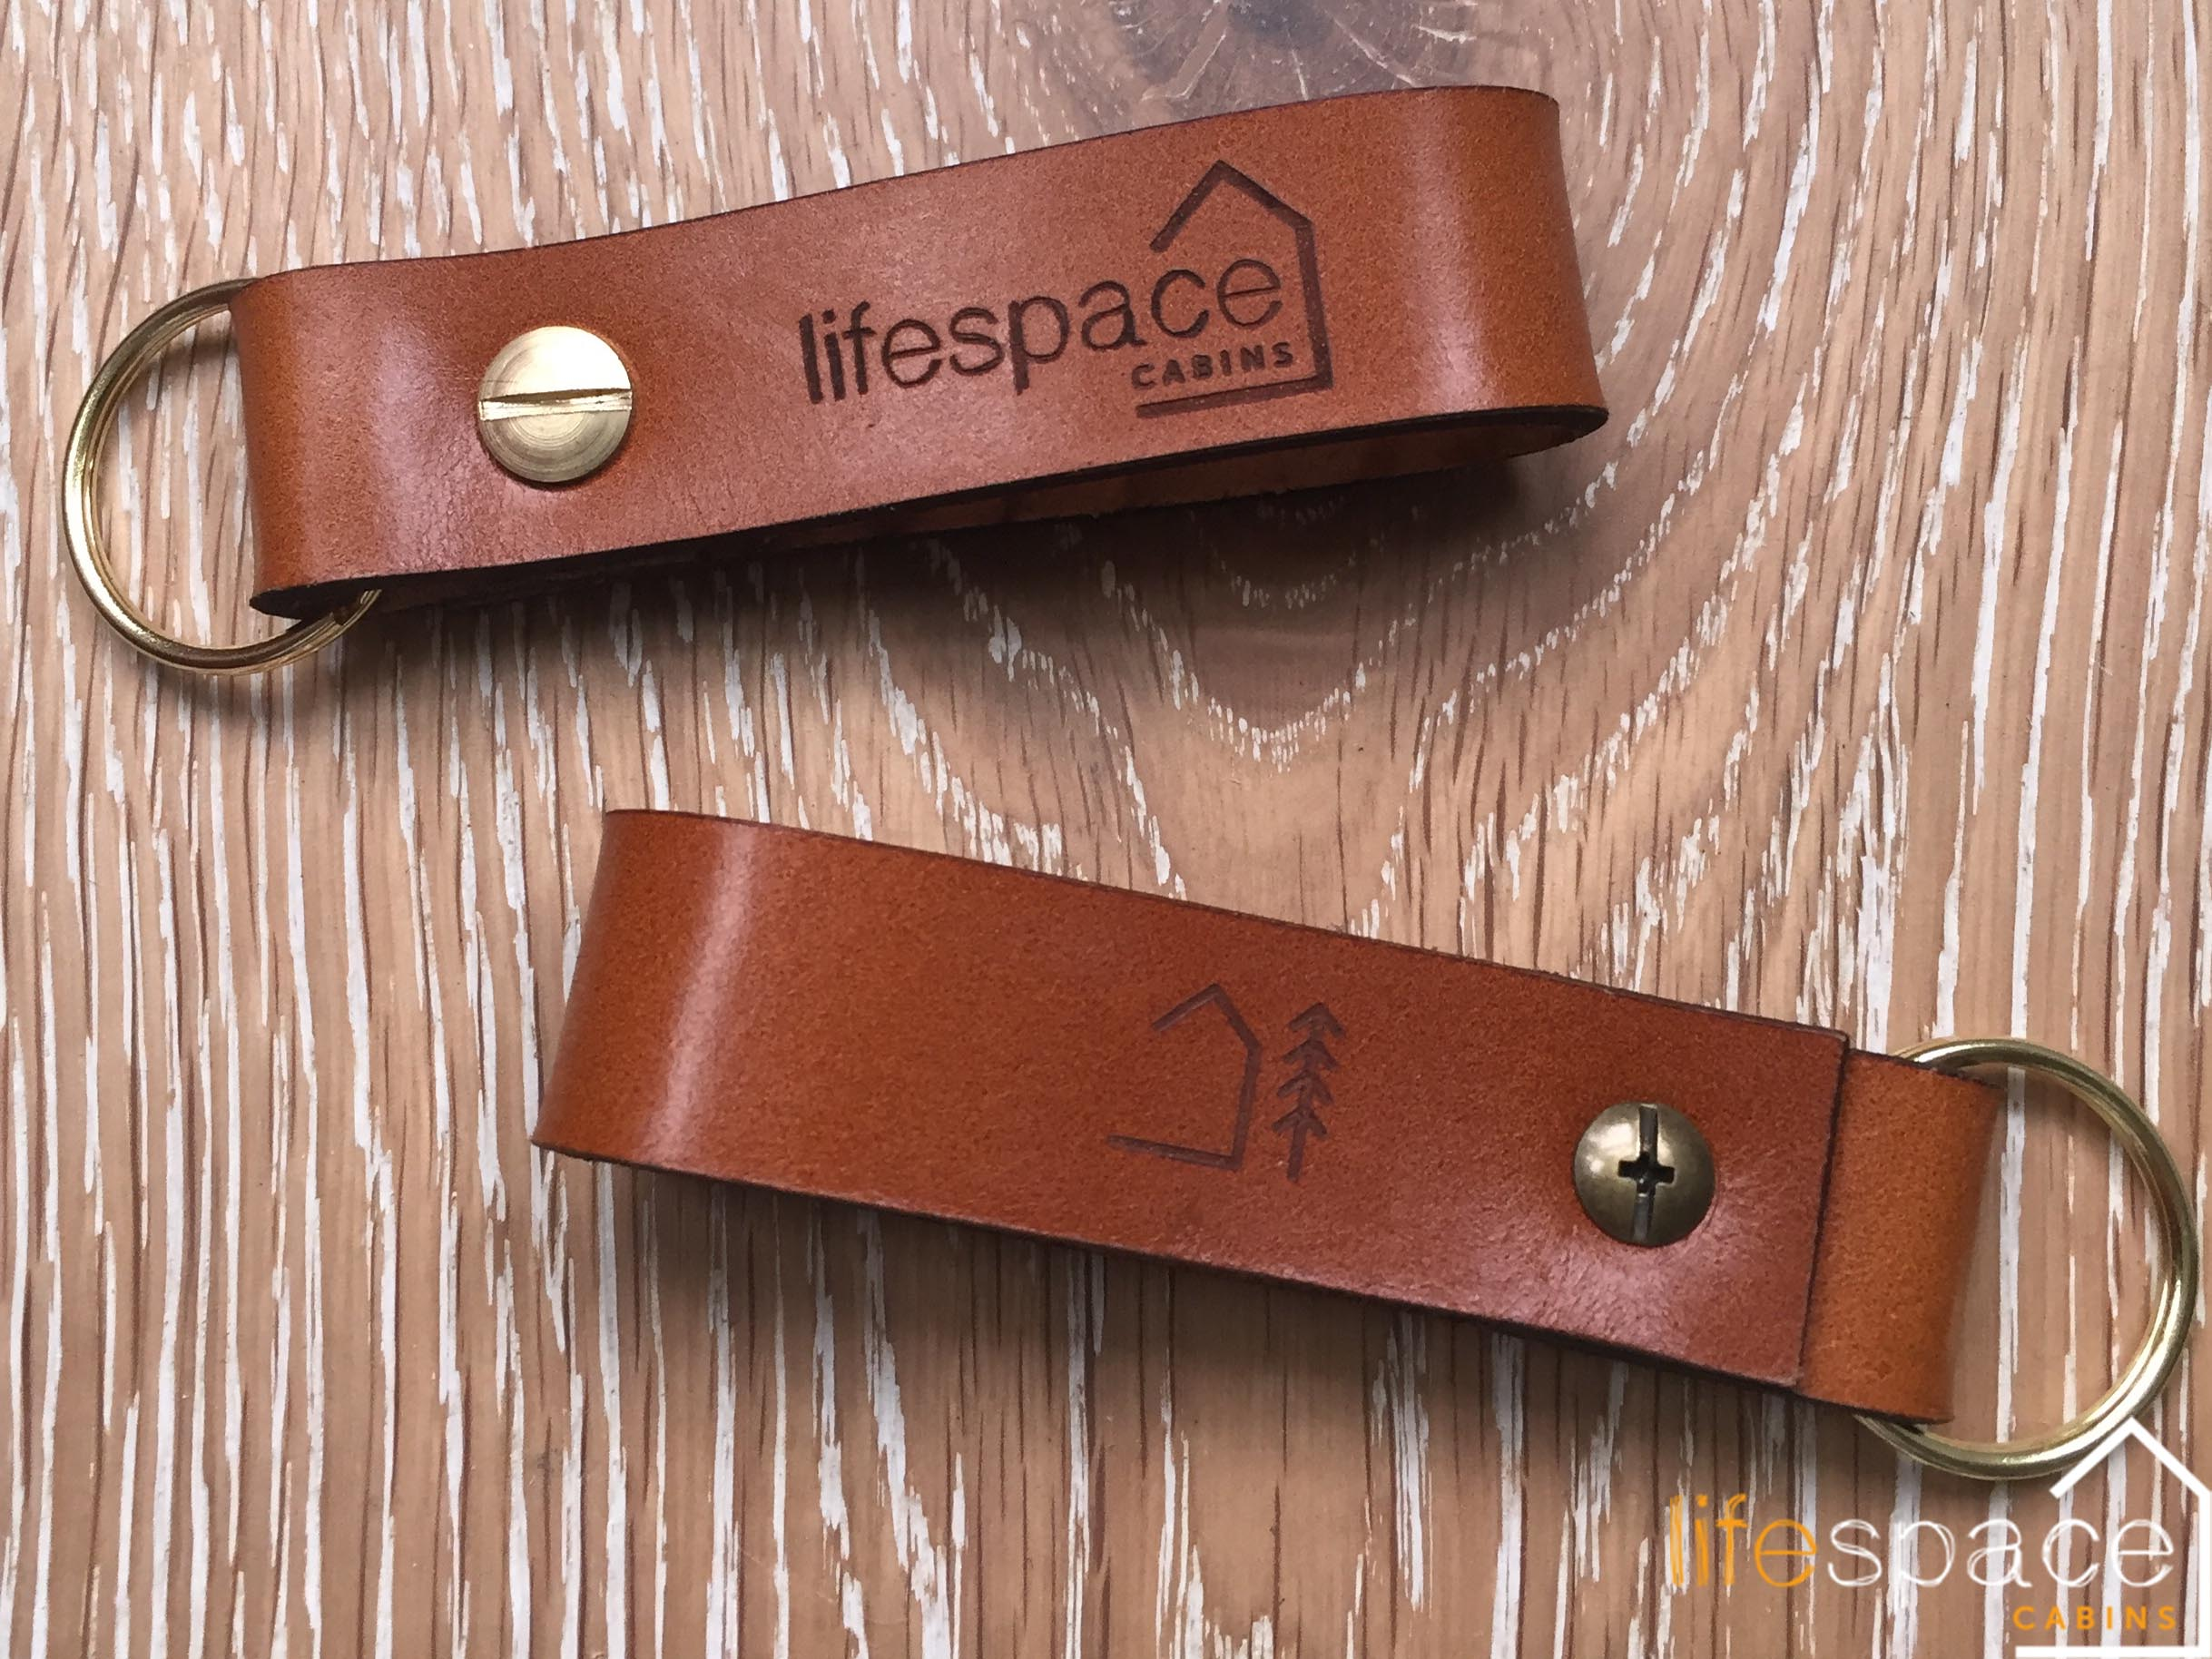 Life Space Cabins Key Ring merchandise made by Cut By Beam